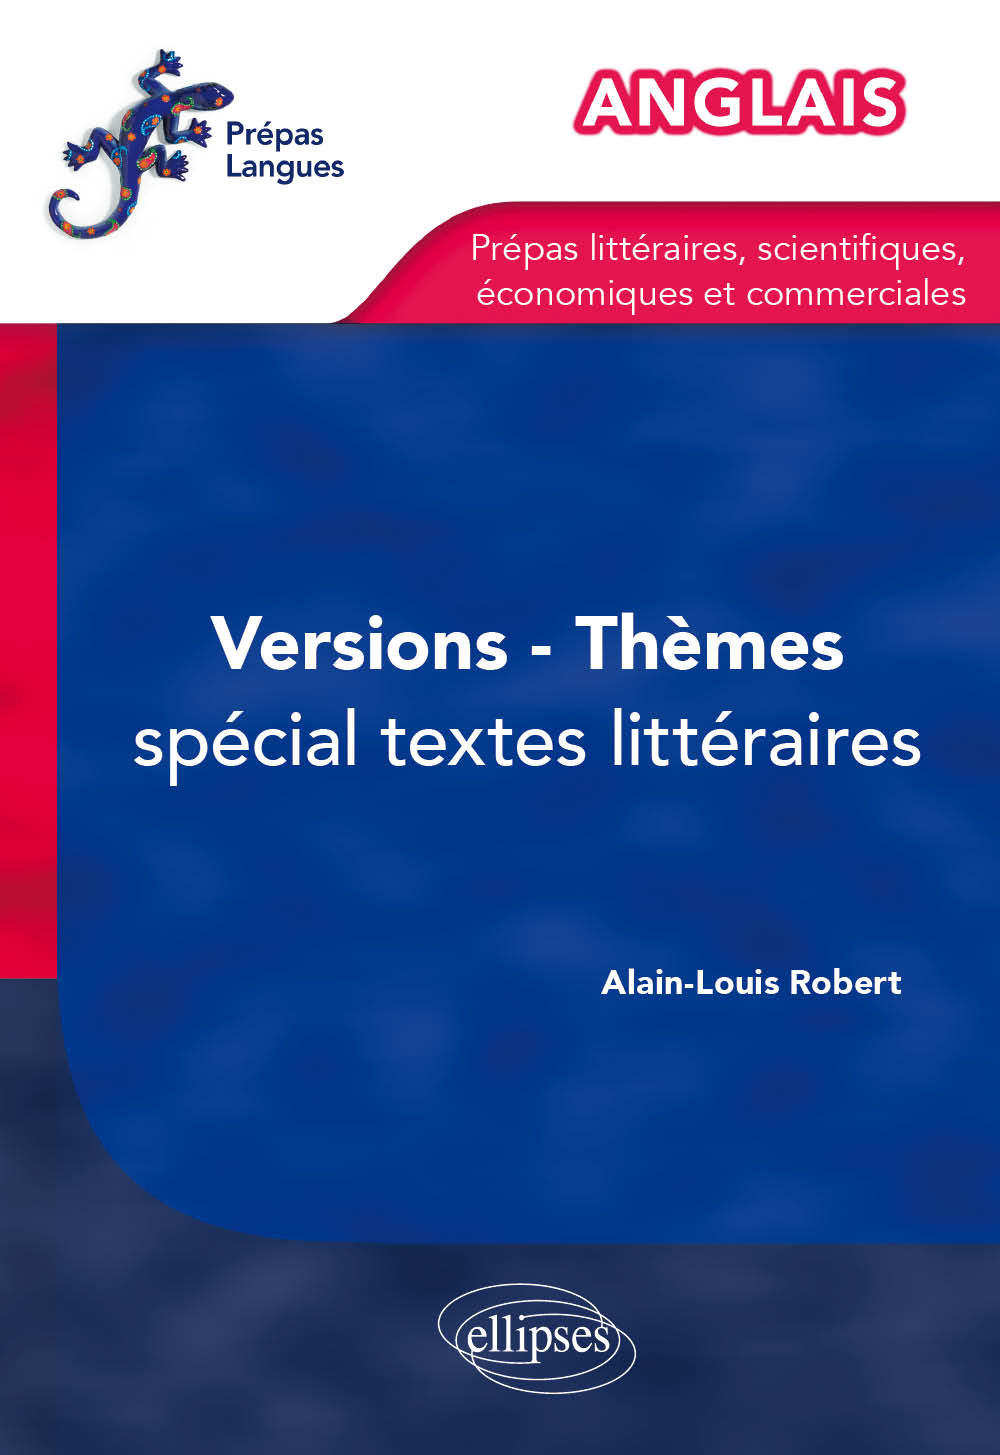 Anglais - th�mes, versions - sp�cial textes litt�raires - (pr�pas)